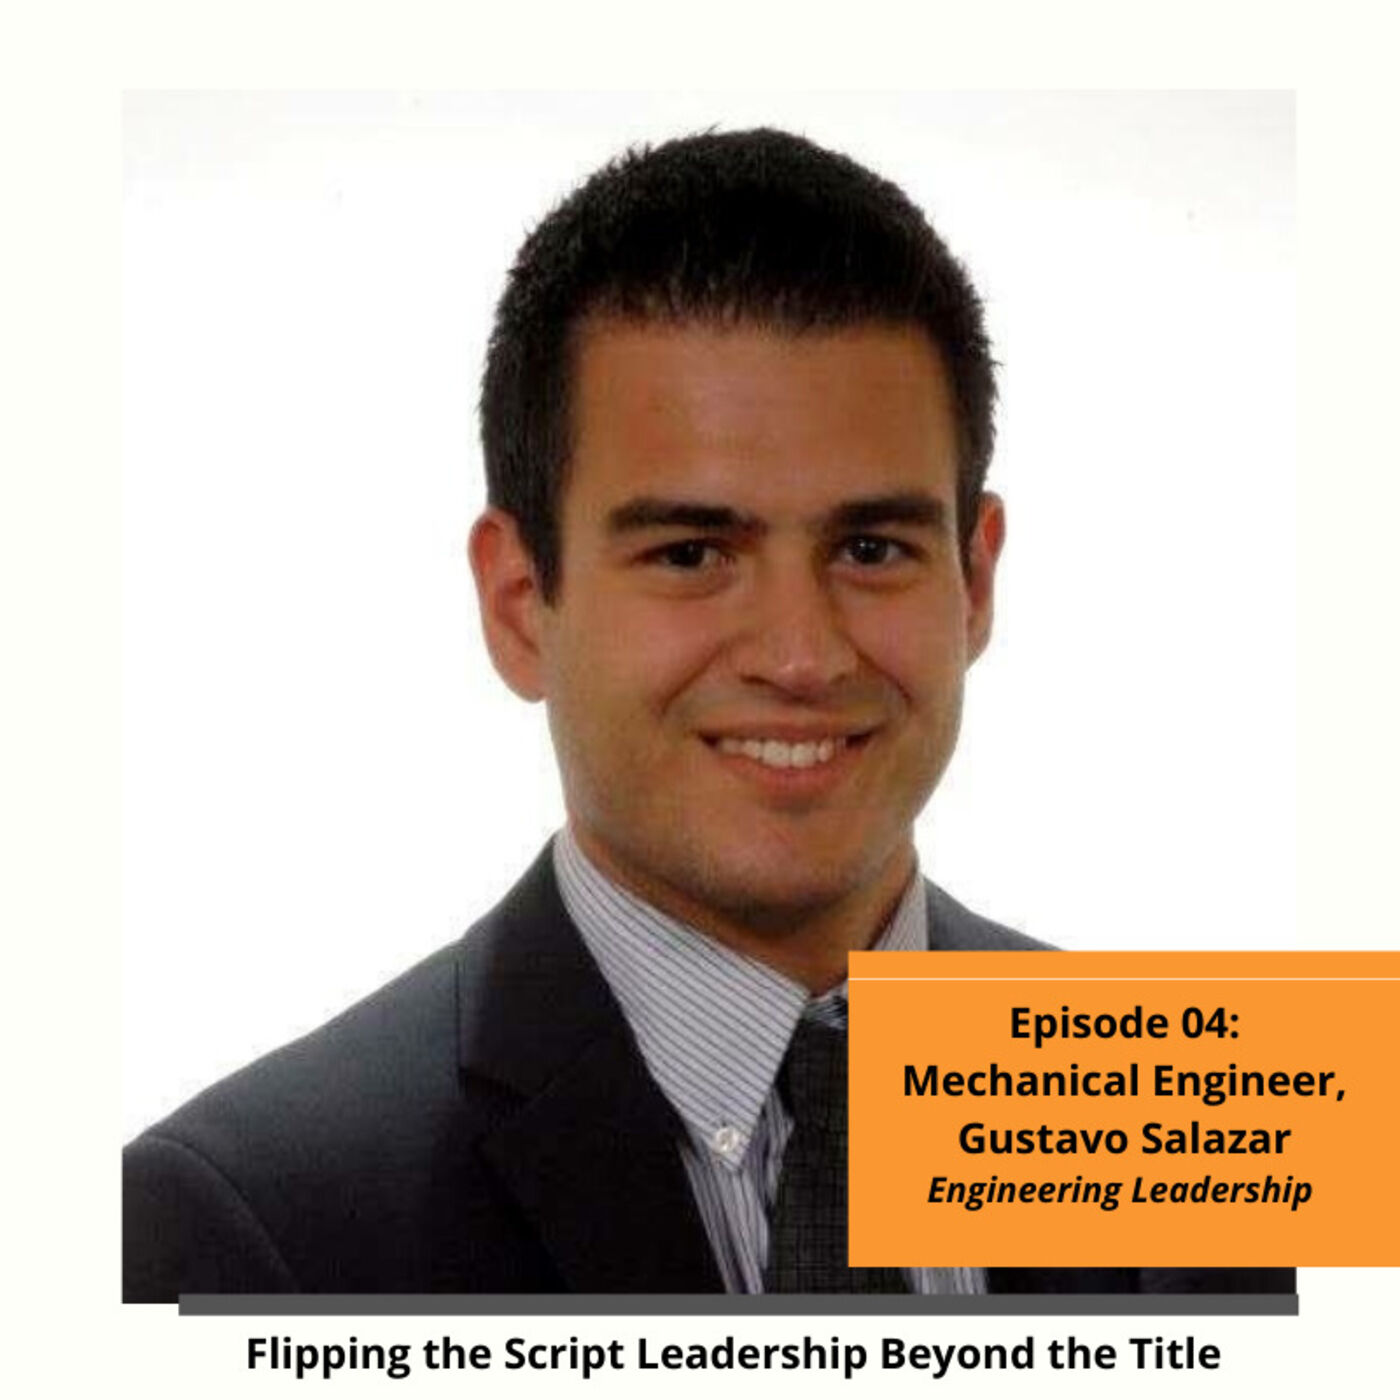 04: Engineering Leadership at the Core for our Future